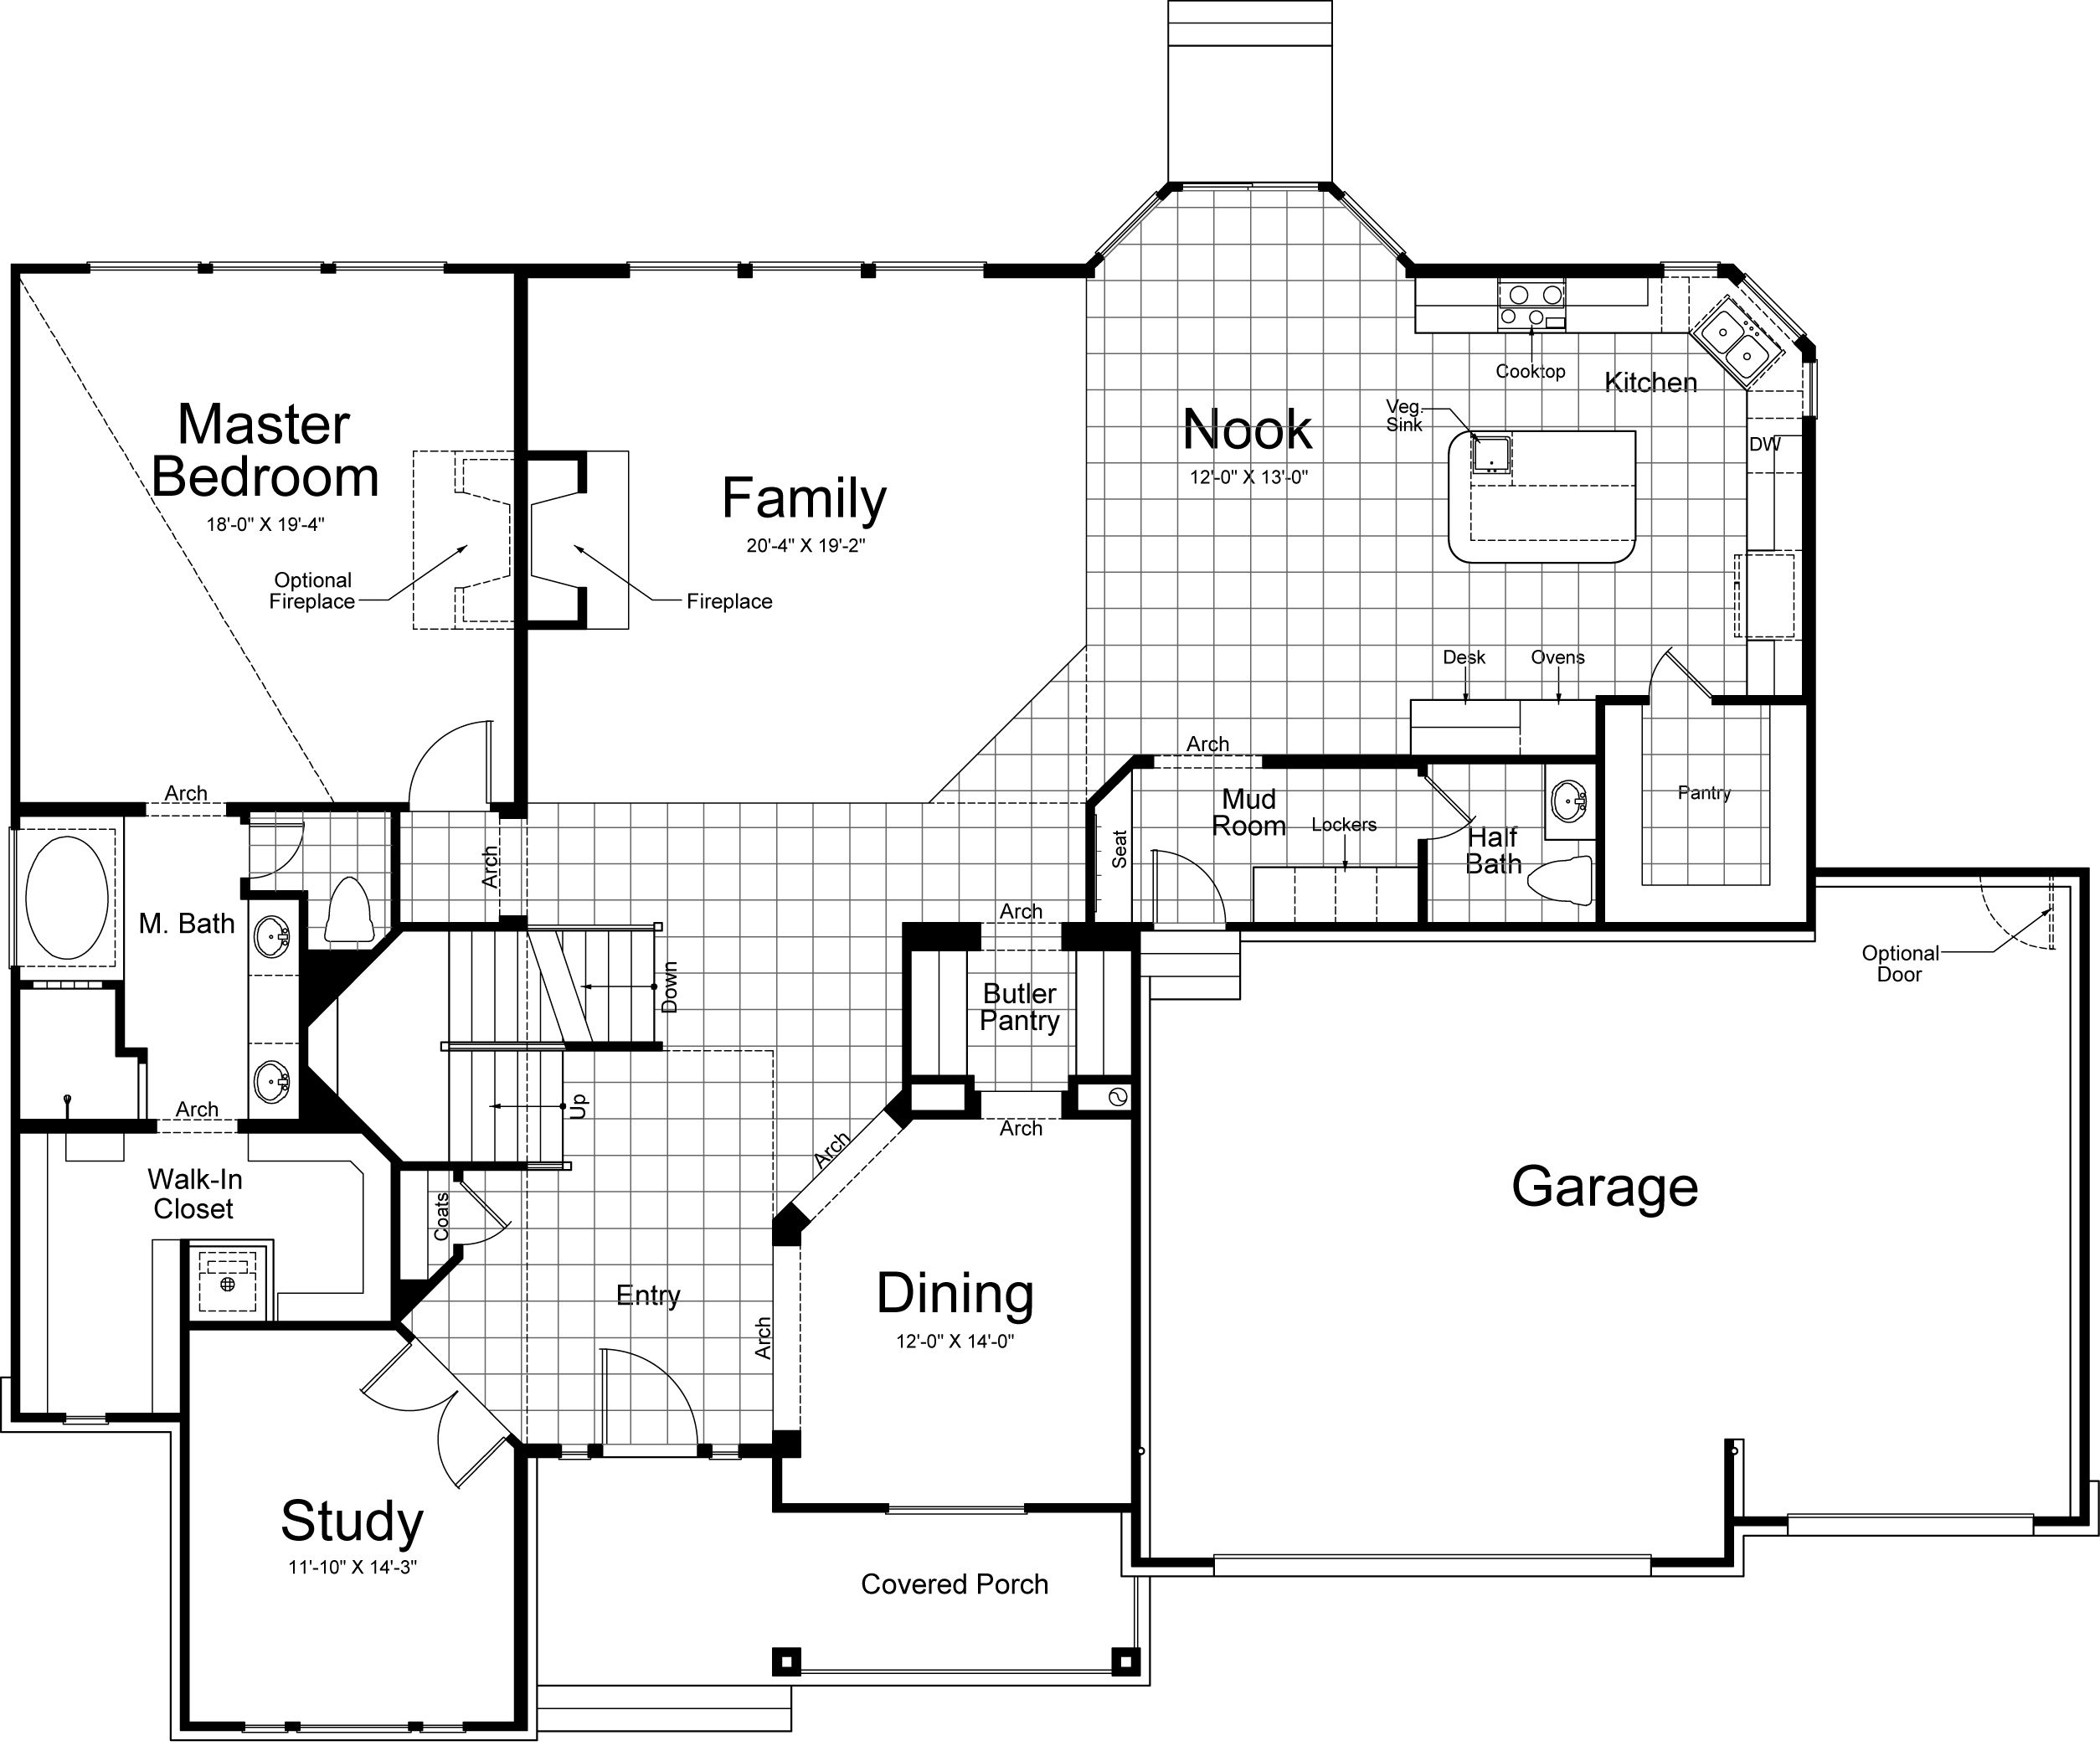 Floor Plana Few Changes Thoughlaundry On Main Floor And No Mesmerizing Dining Room Floor Plans Decorating Design